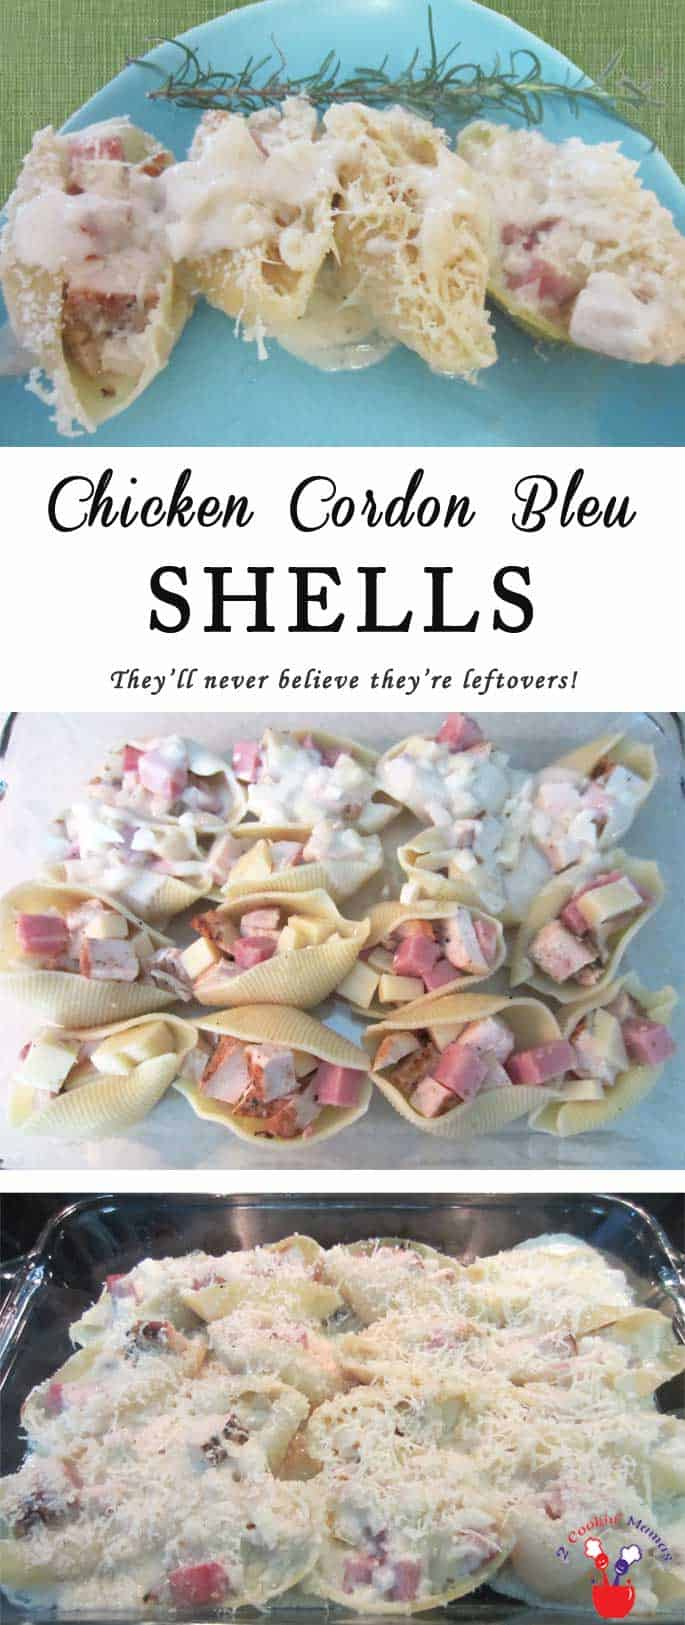 Chicken Cordon Bleu Shells is a pasta dish that combines the best of chicken cordon bleu & Italian shells. The shells are stuffed with leftover chicken & ham then topped with a creamy cheese sauce. Leftovers never tasted so good! #casserole #chicken #ham #chickencodonbleu #stuffedshells #dinner